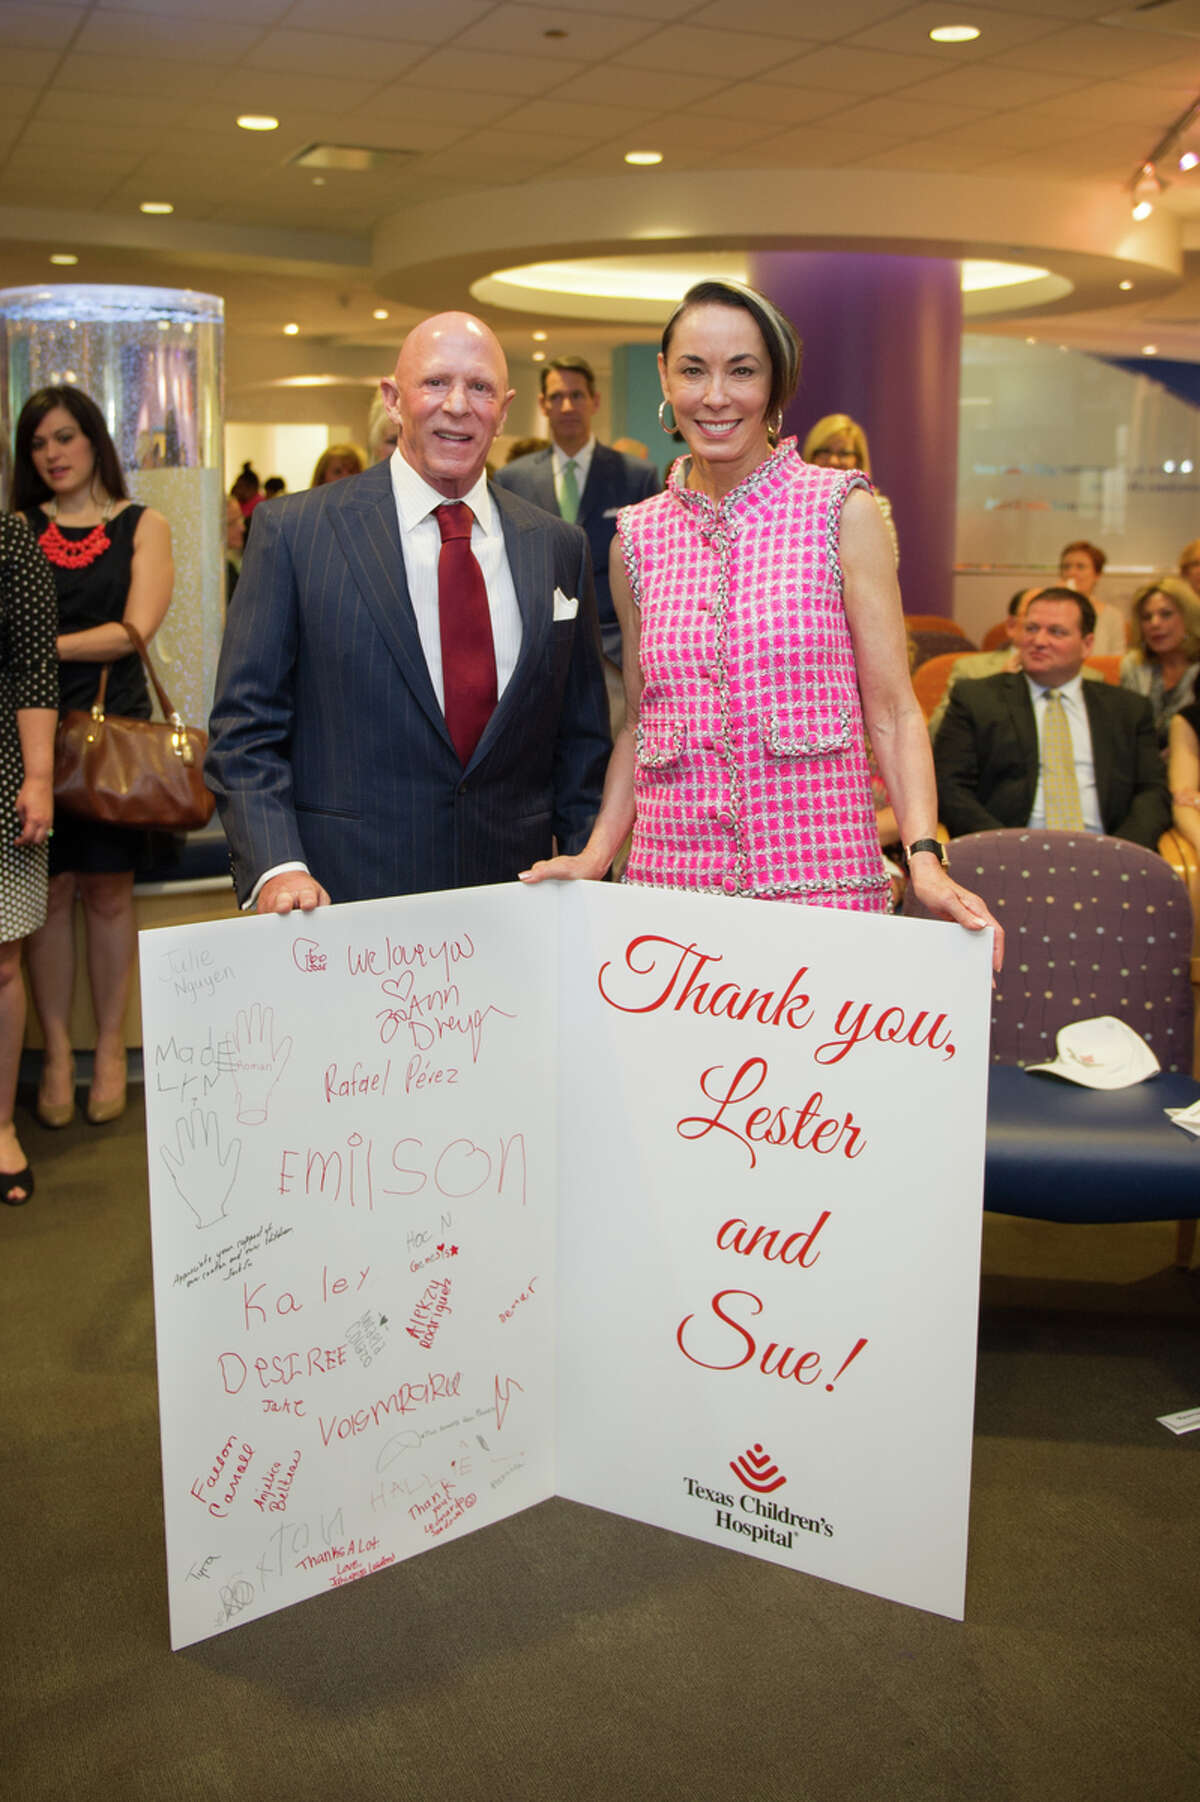 Lester and Sue Smith were recently honored for their donations to Texas Children's Hospital.